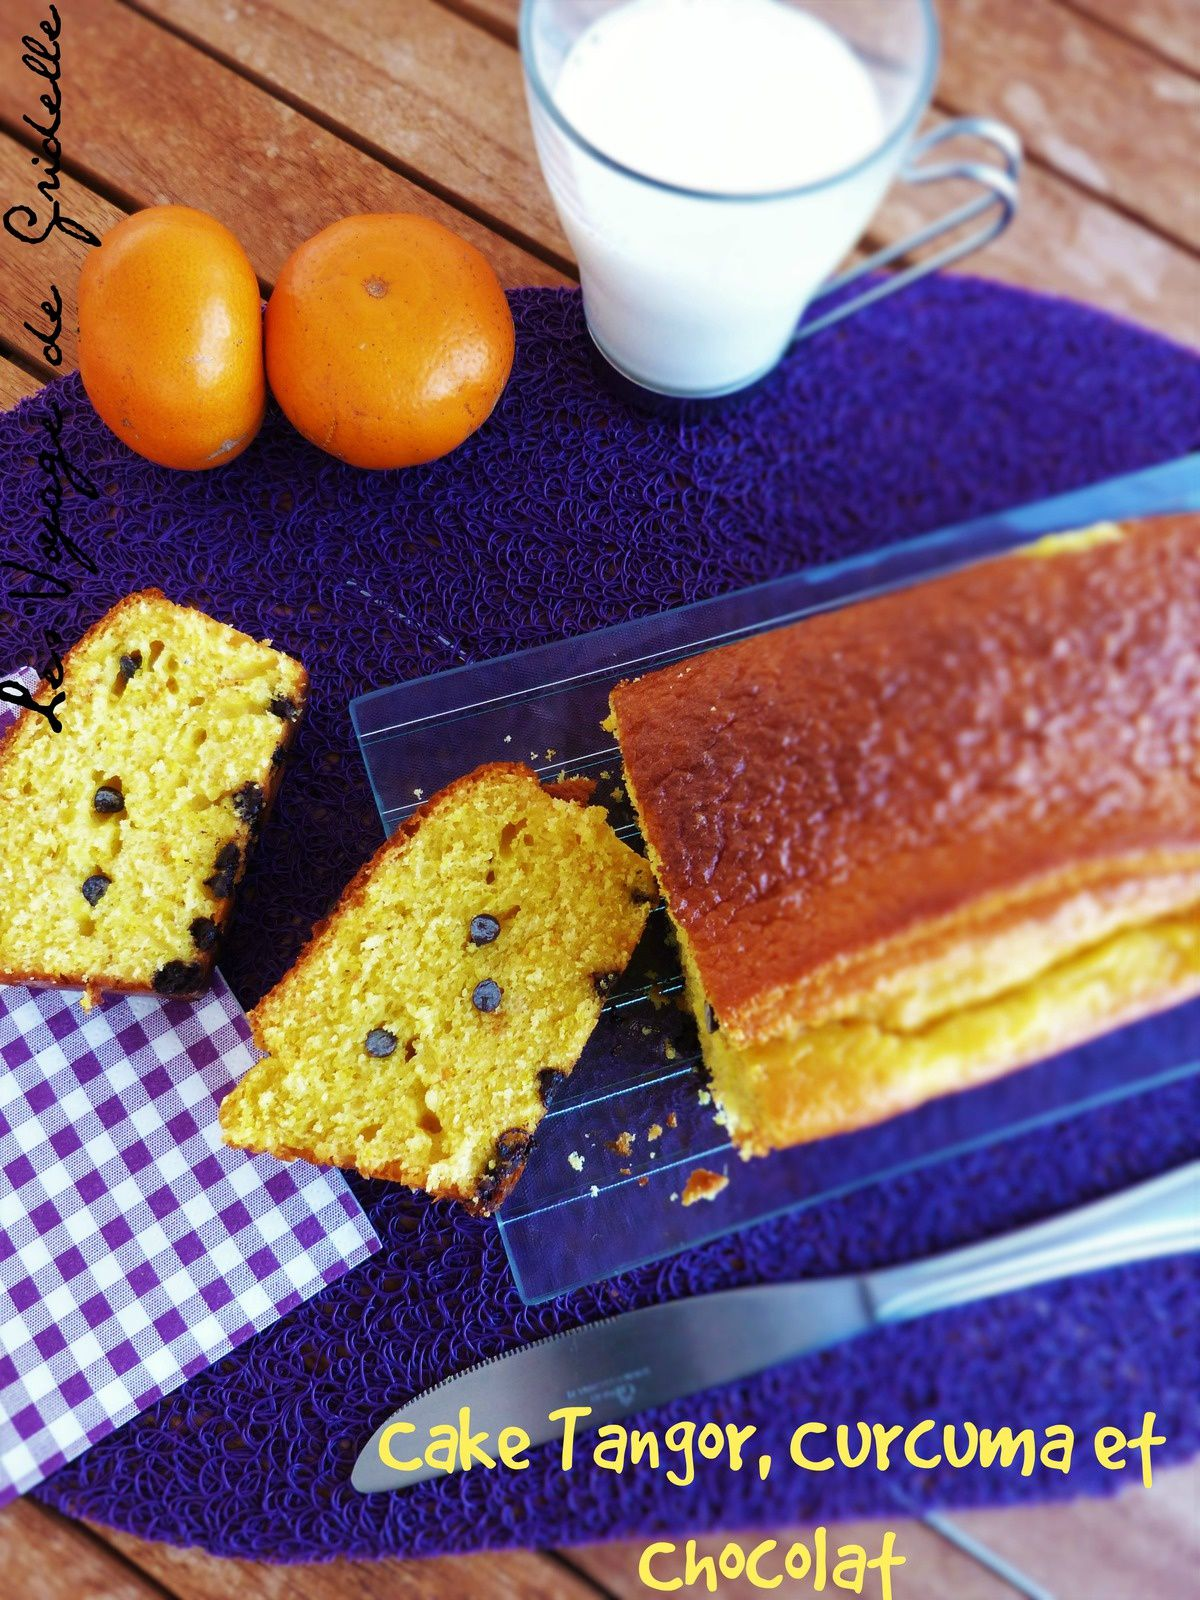 Cake au Tangor (Orange), Curcuma et Chocolat